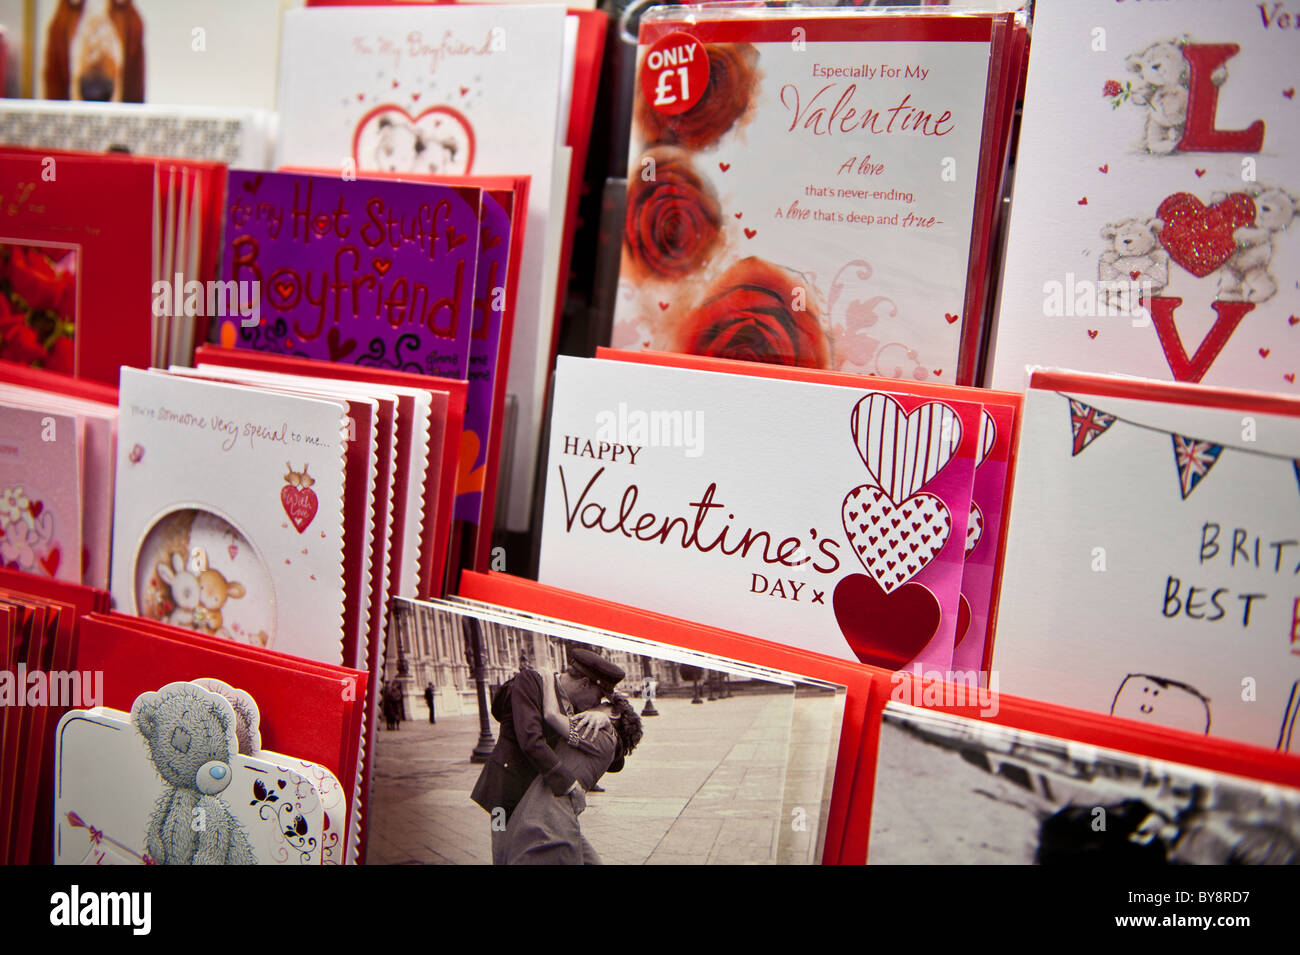 Racks of valentine day cards on sale at a branch of W H Smith UK – Valentines Cards Uk